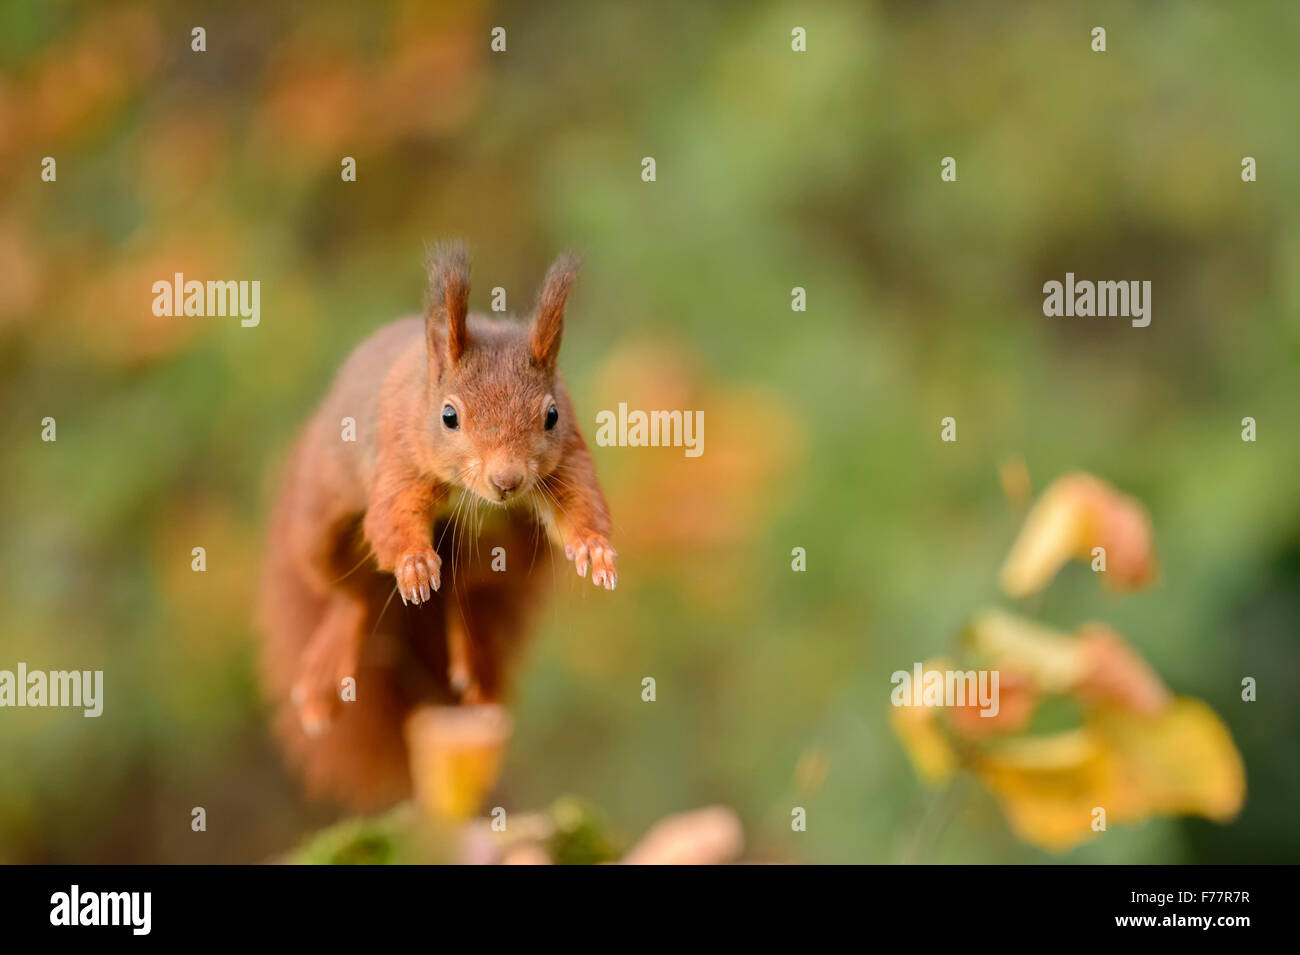 Leaping red squirrel, jumping frontal towards the viewer - Stock Image